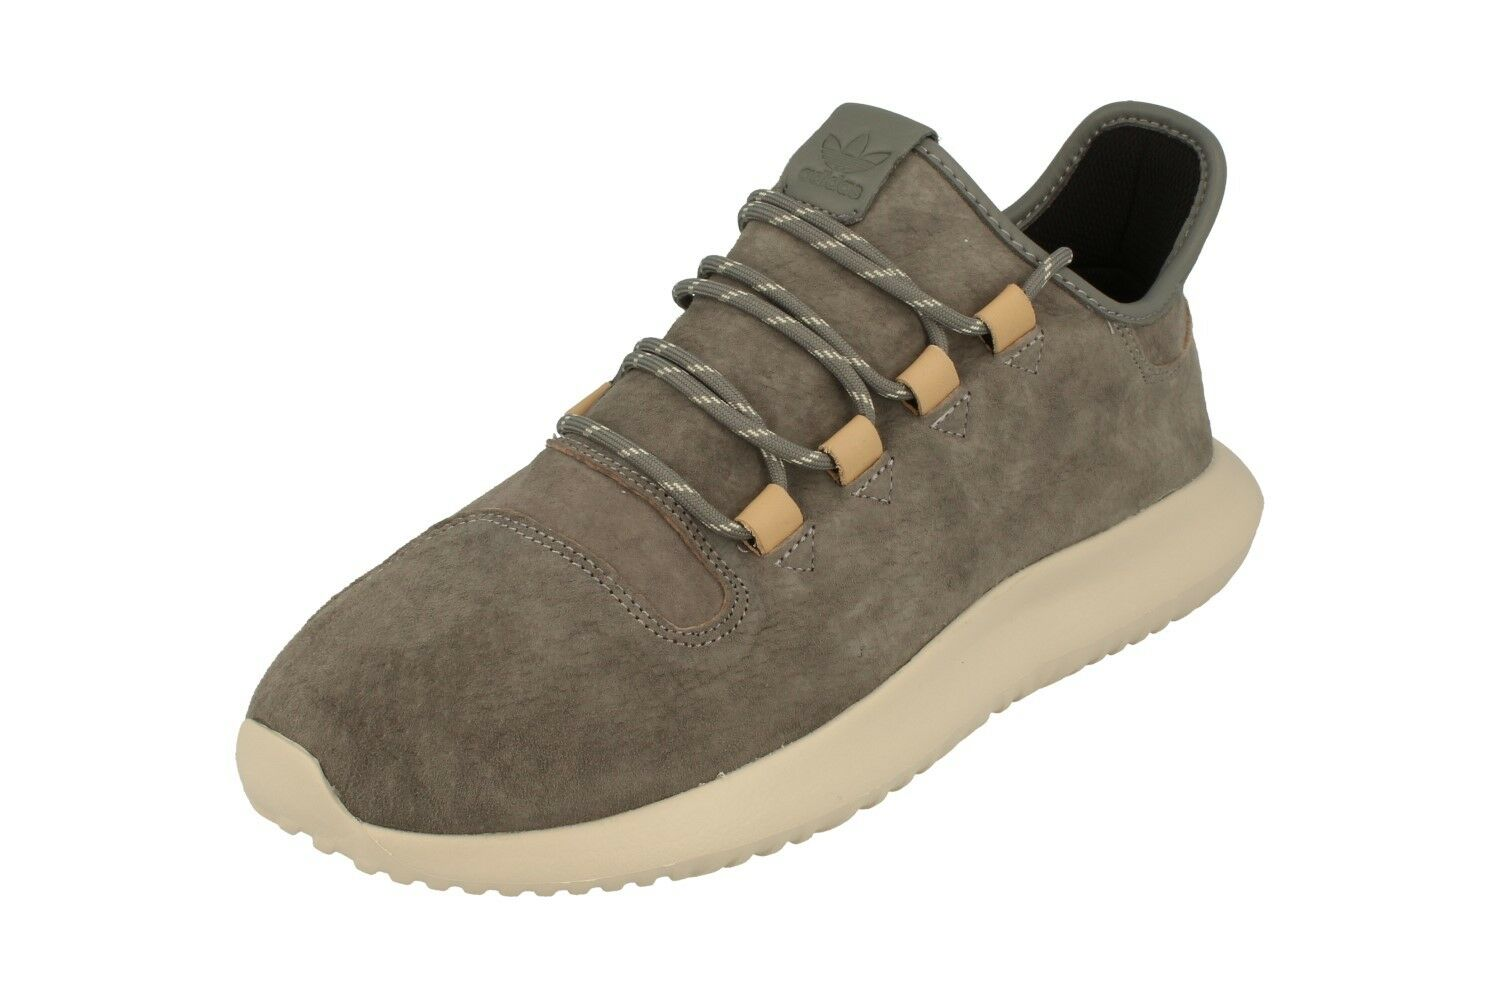 Adidas Originals Tubular Shadow Mens Trainers Sneakers BY3569 Shoes